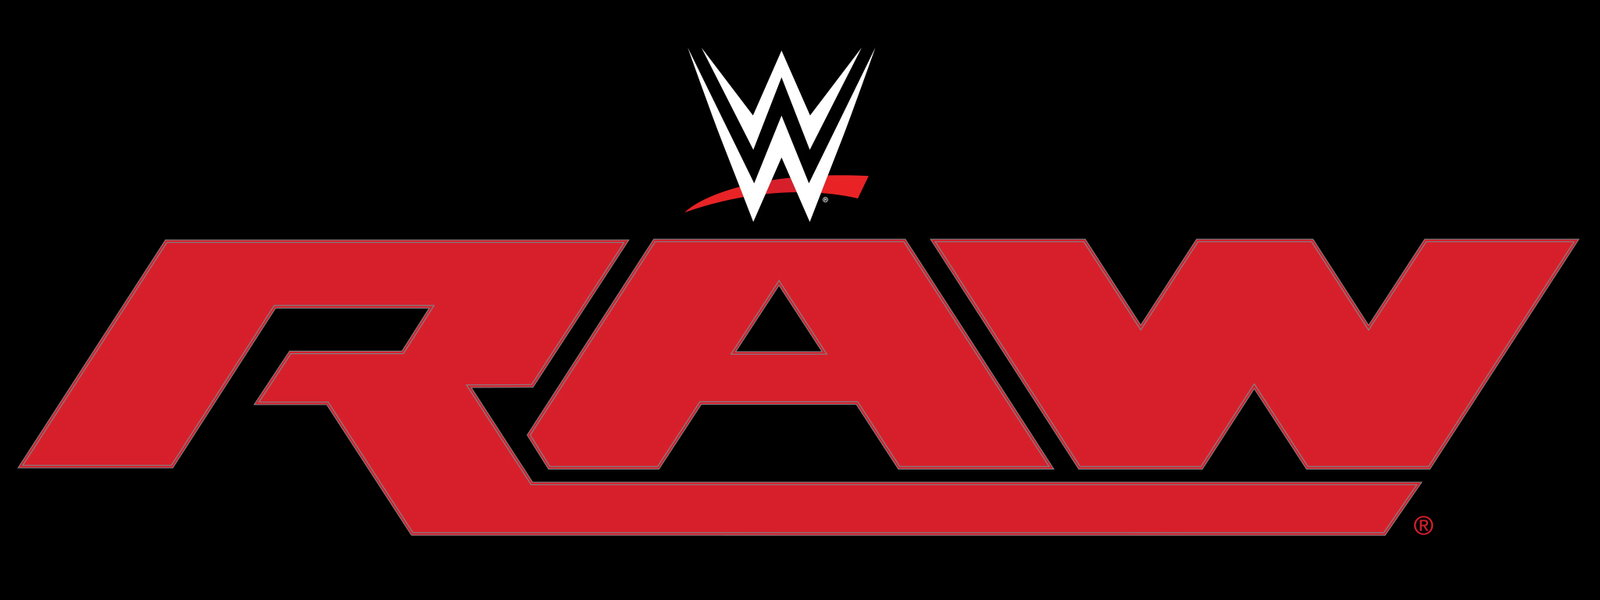 Wwe monday night raw 2016 online world of wrestling - Monday night raw images ...